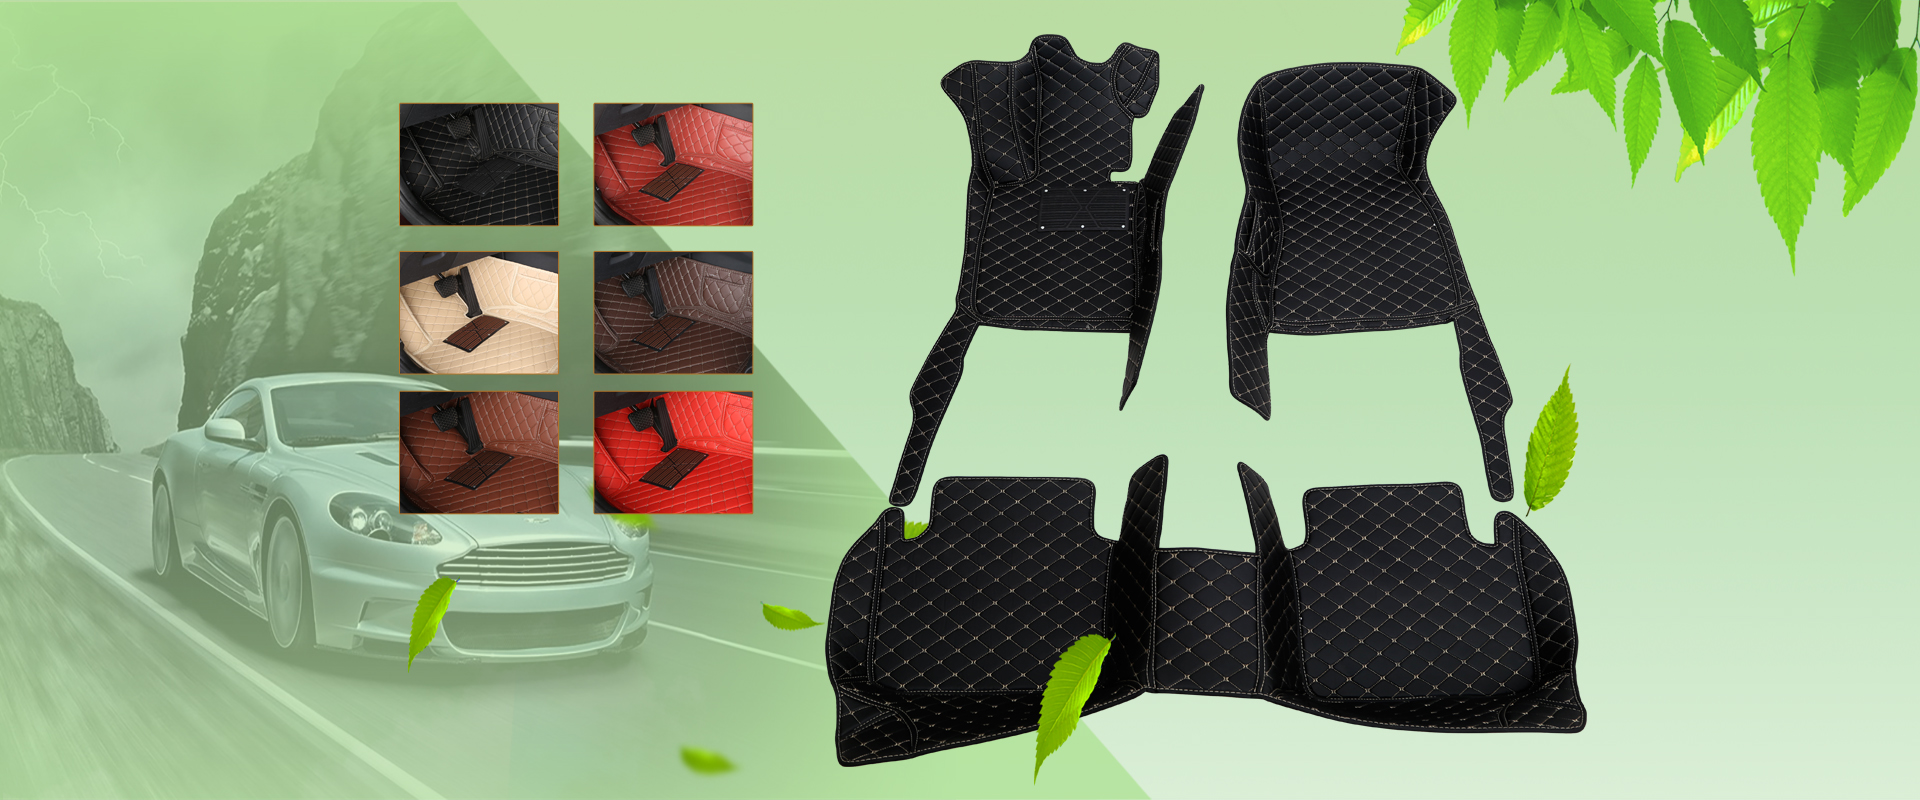 hand sewing fully enclosed 5D PU leather car mat